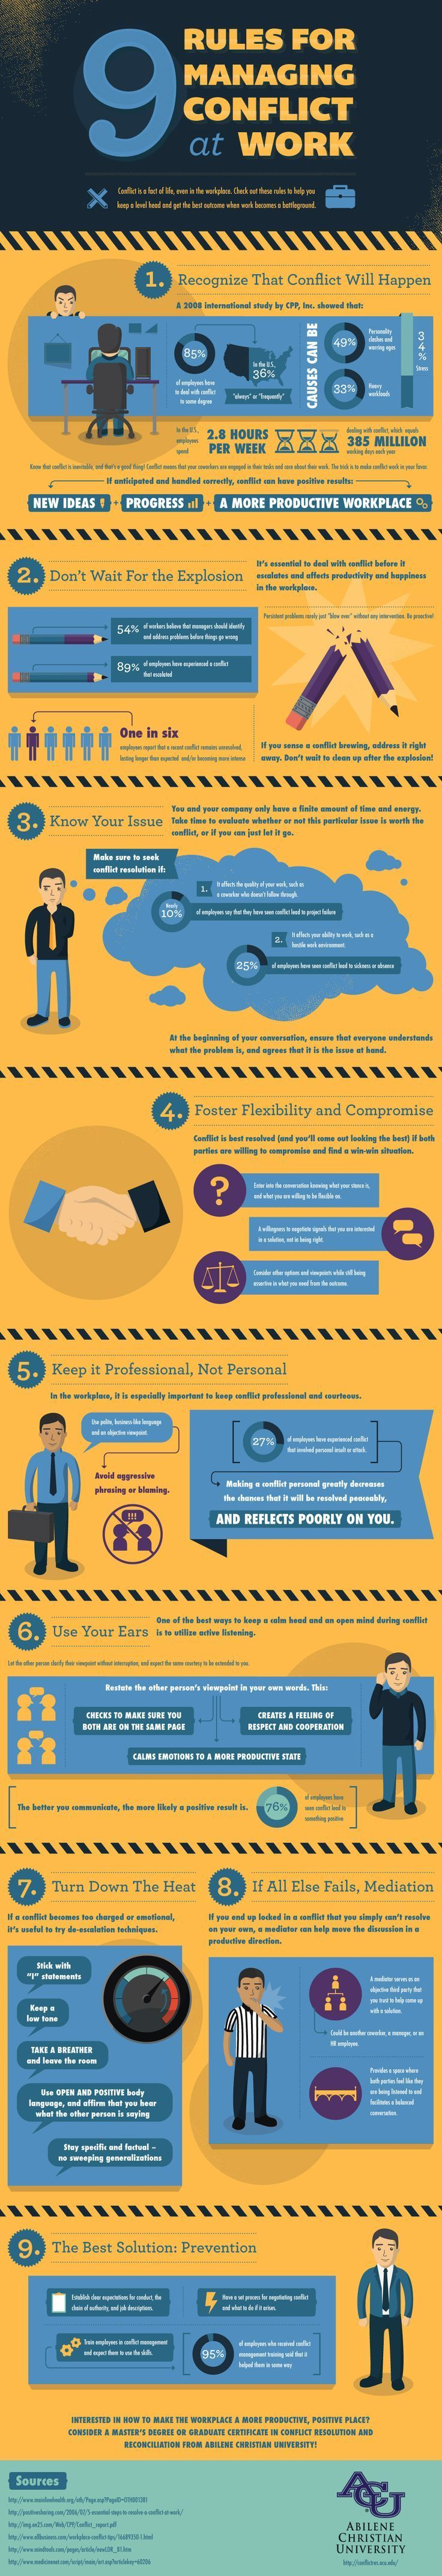 9 Rules For Conflict Management At Work   PMP   Pinterest